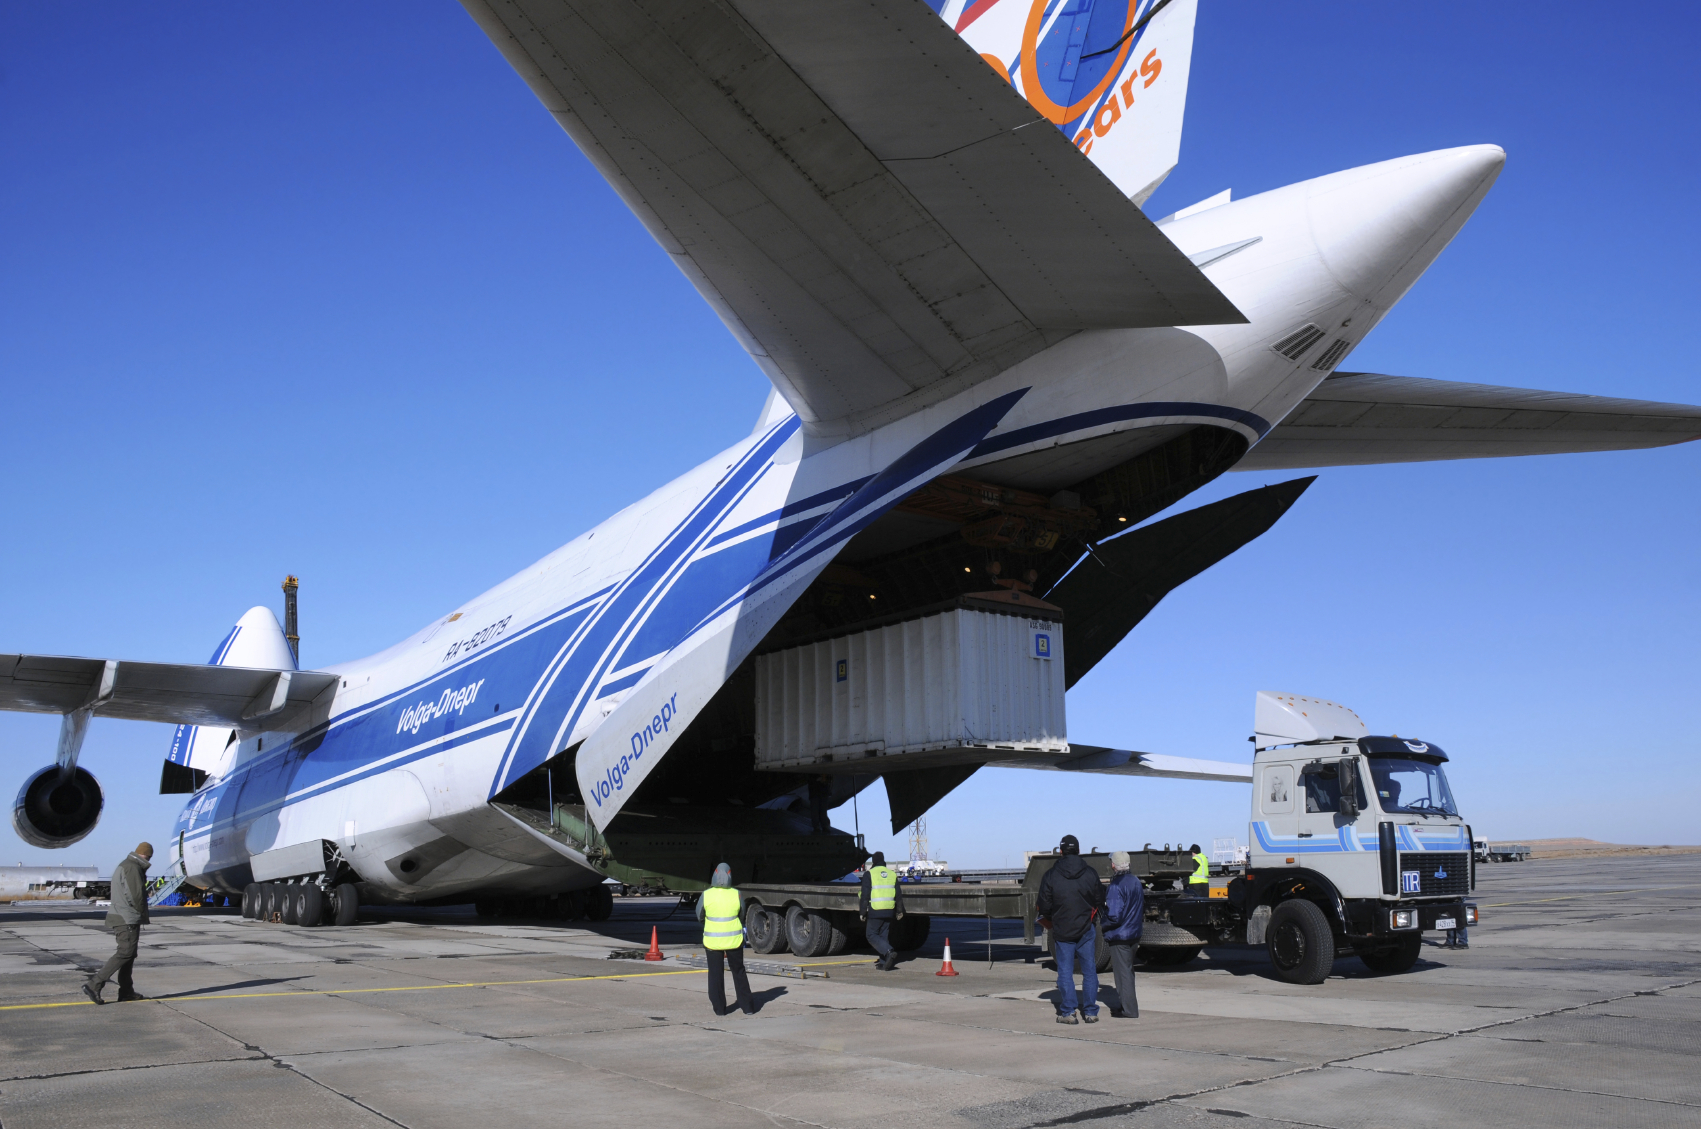 Expedited Air Shipping Plane Being Loaded